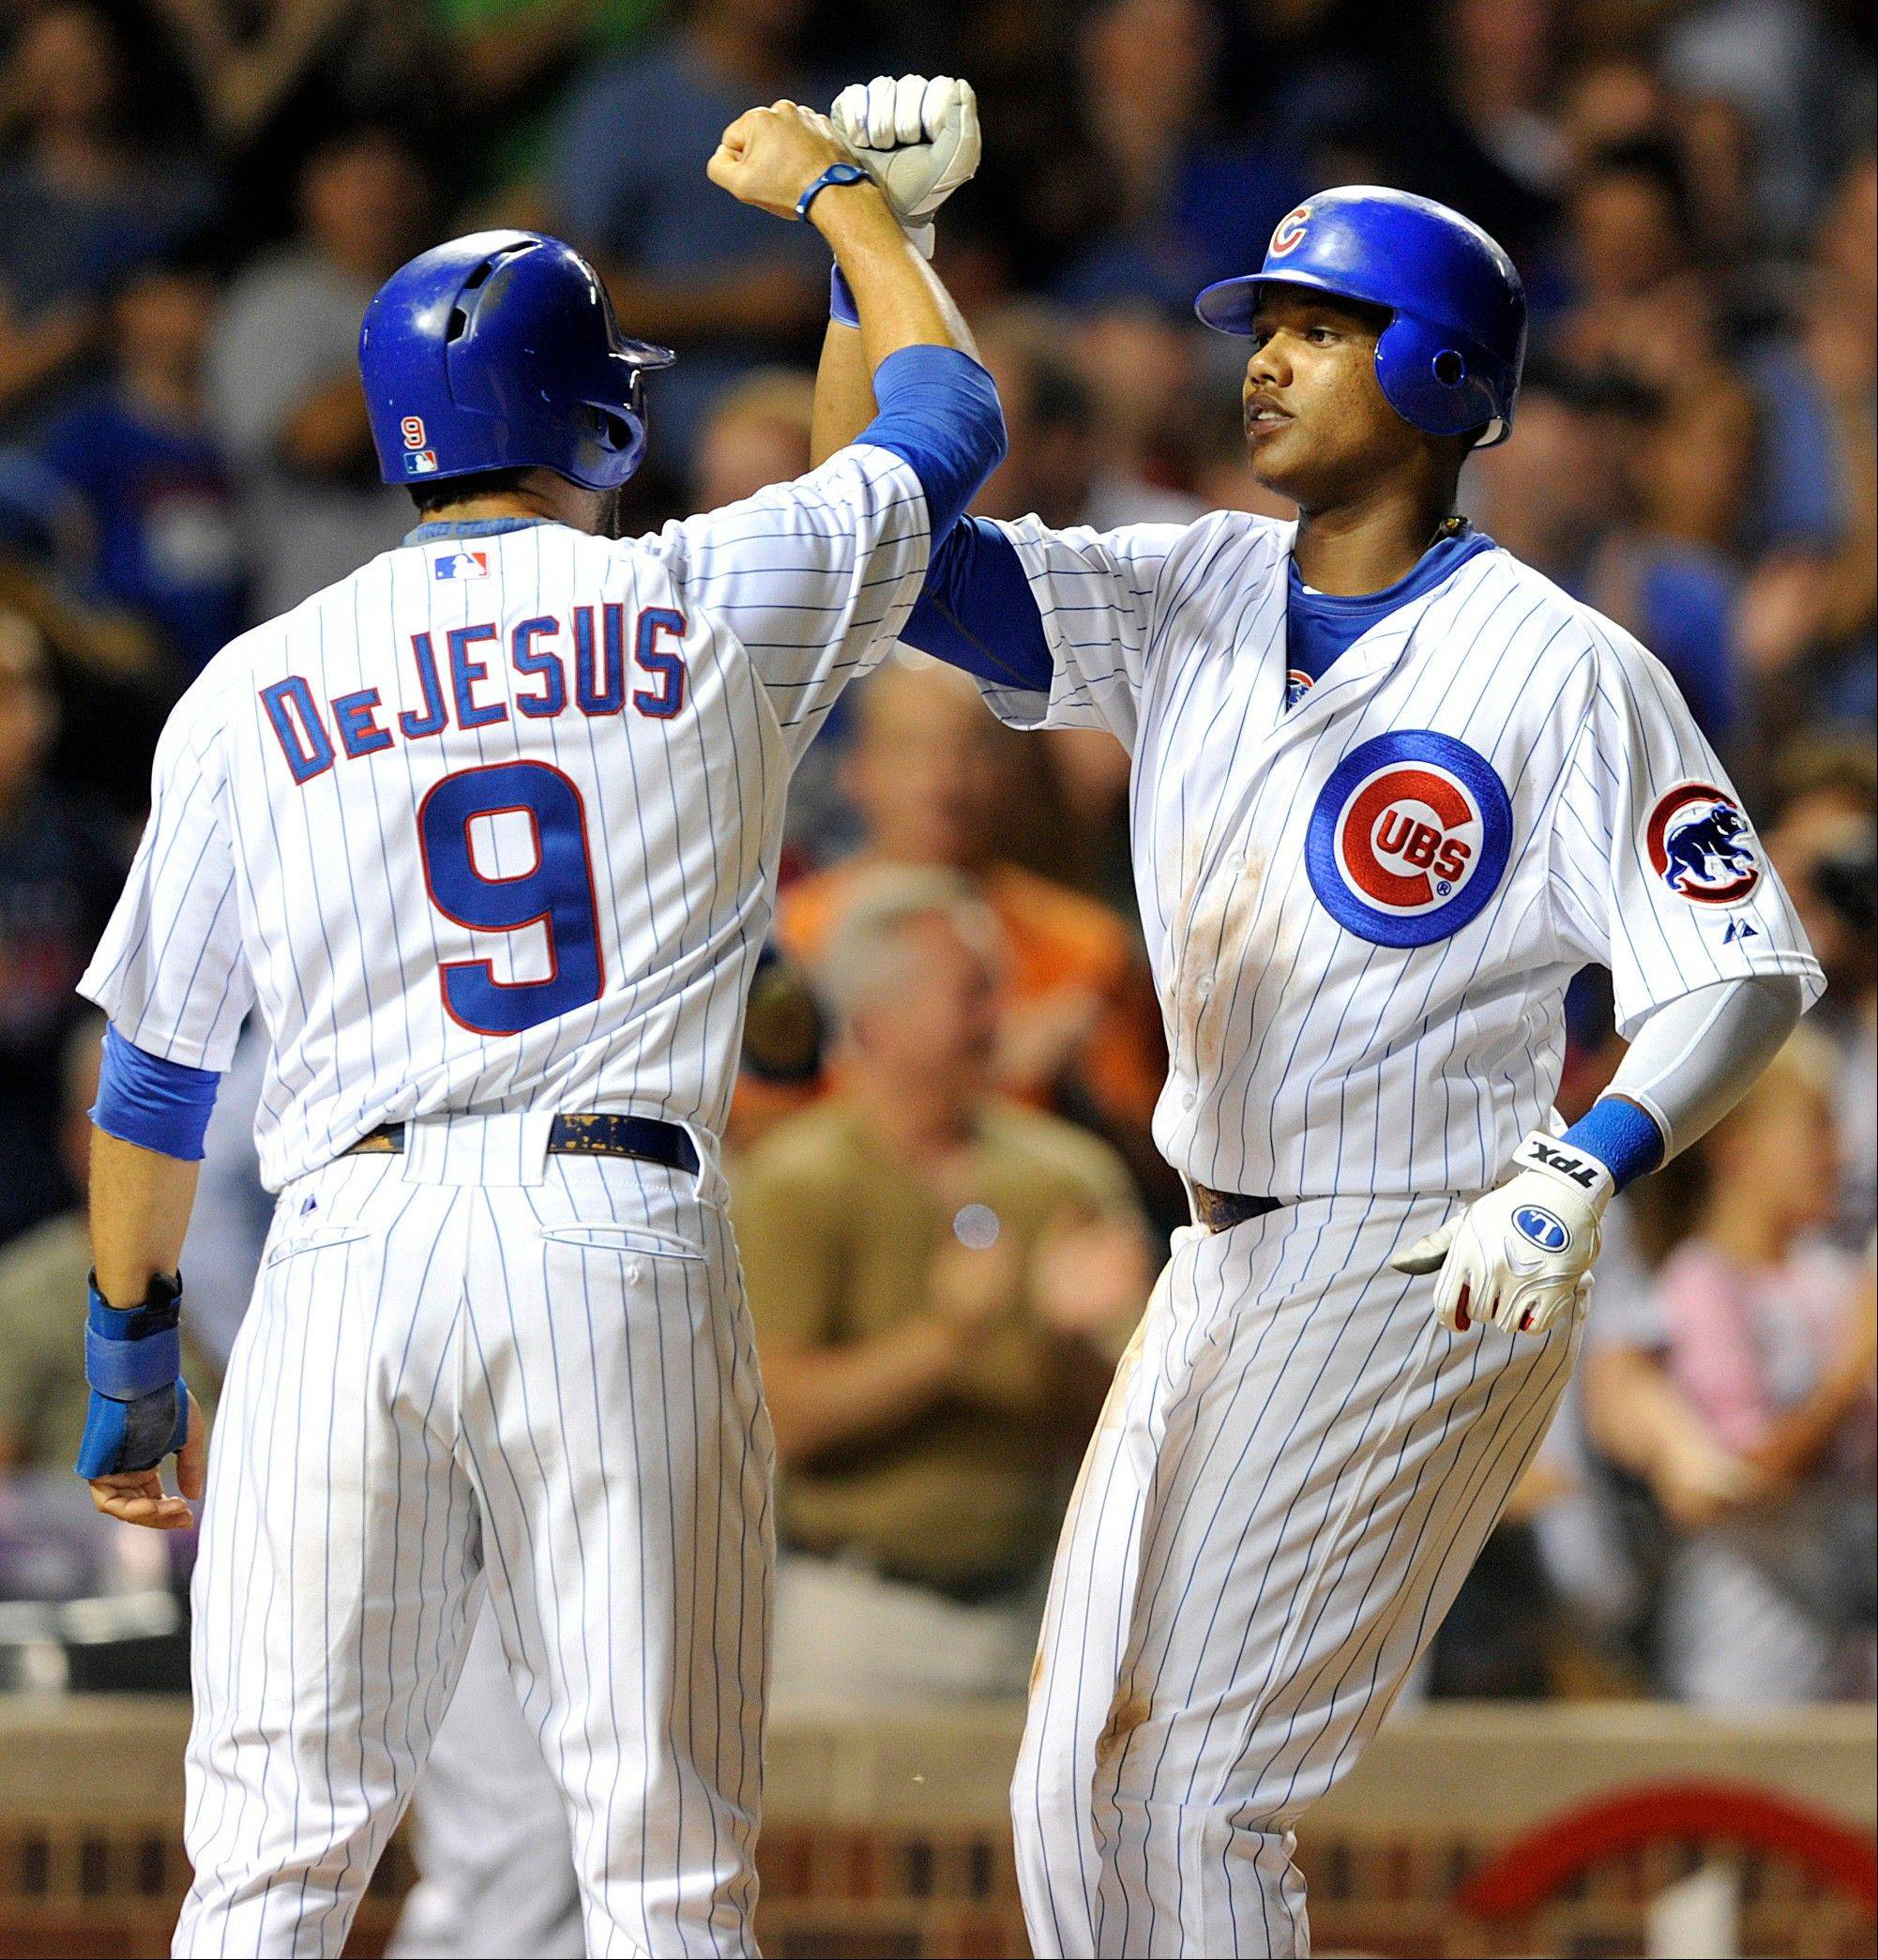 Cubs outfielder David DeJesus congratulates Starlin Castro after Castro�s two-run home run Monday against the Pittsburgh Pirates at Wrigley Field.